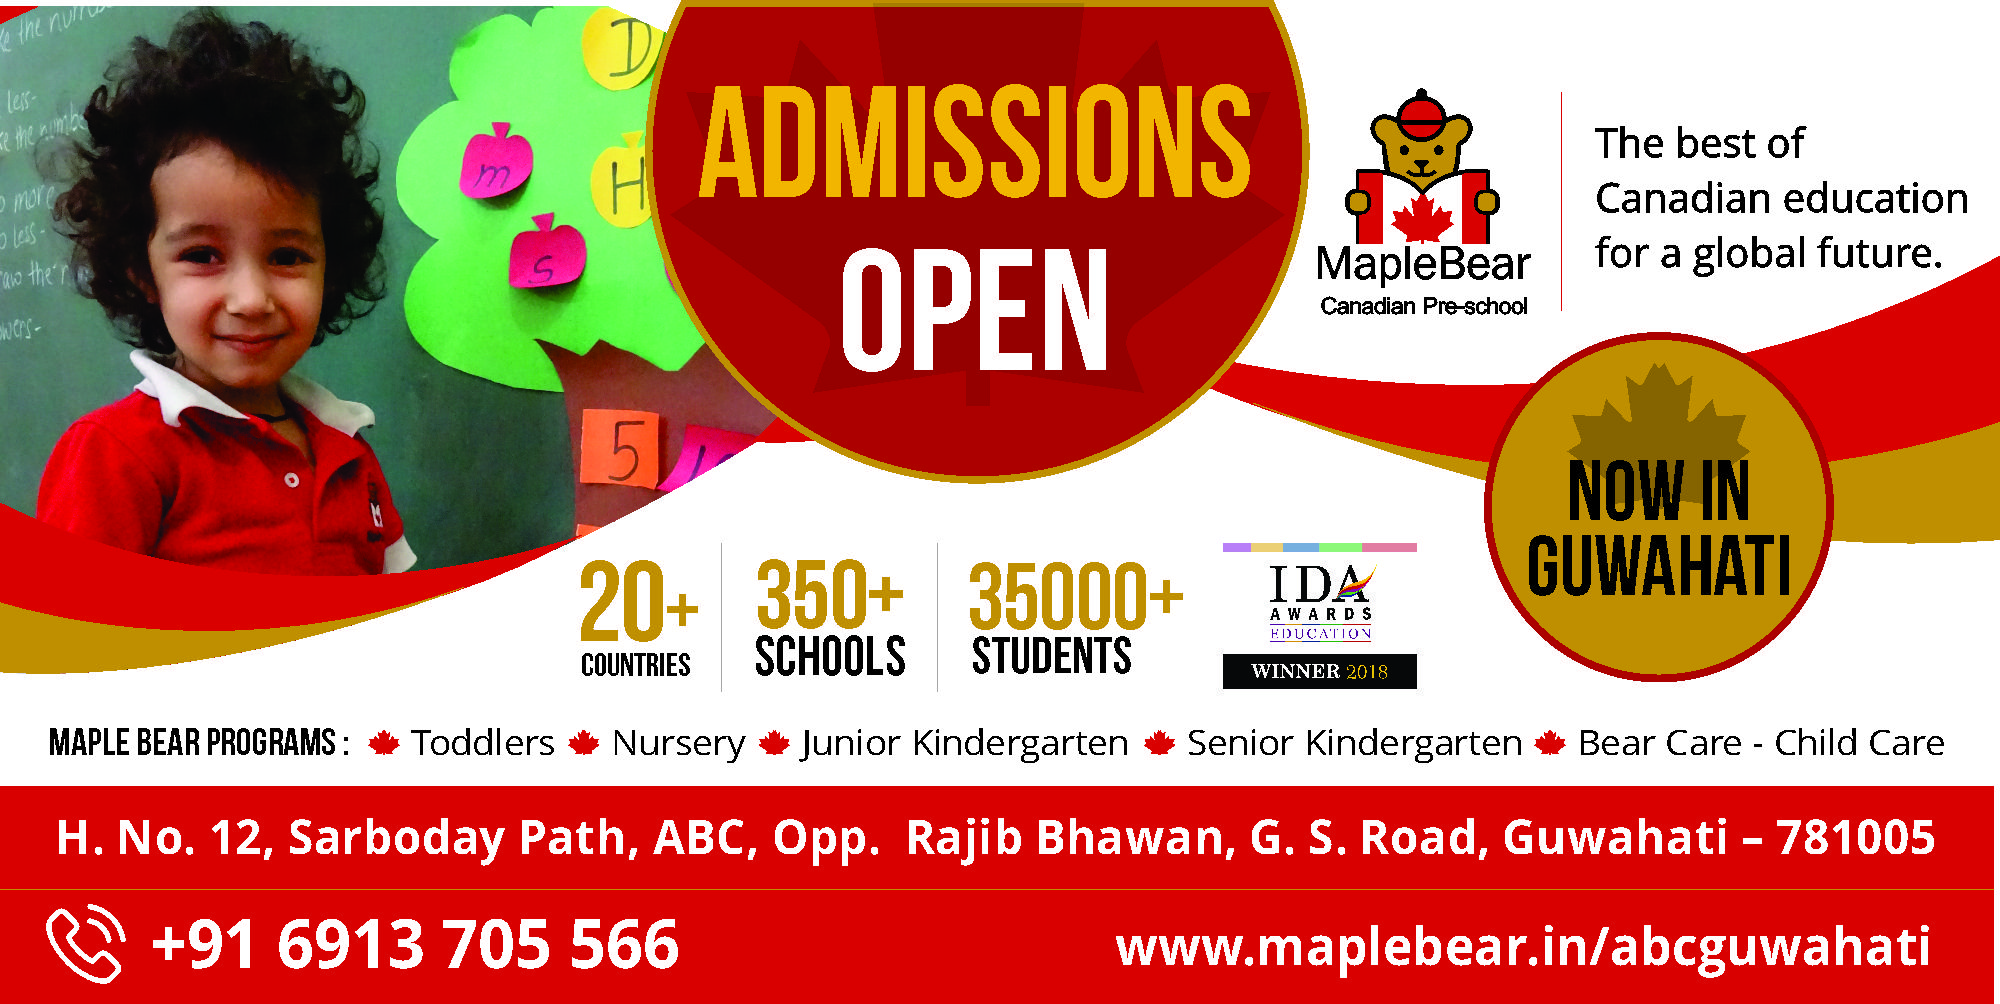 School Admission Open Banners Google Search School Admissions Admissions Country School